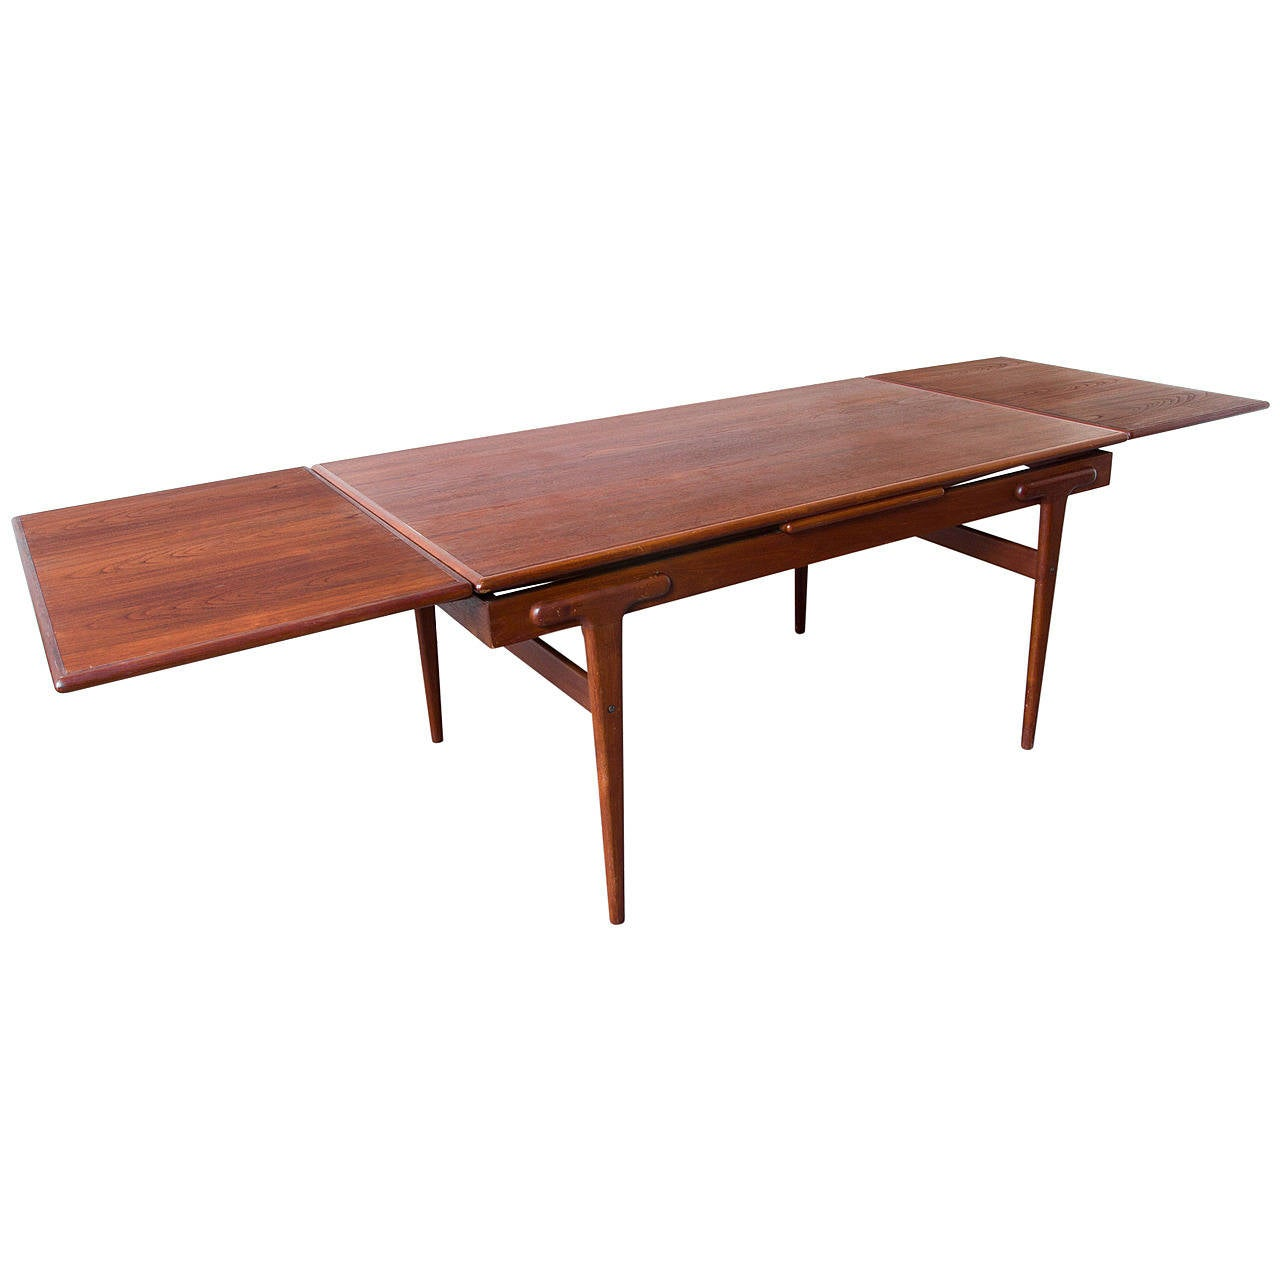 danish teak extension dining table for sale - Extension Dining Table